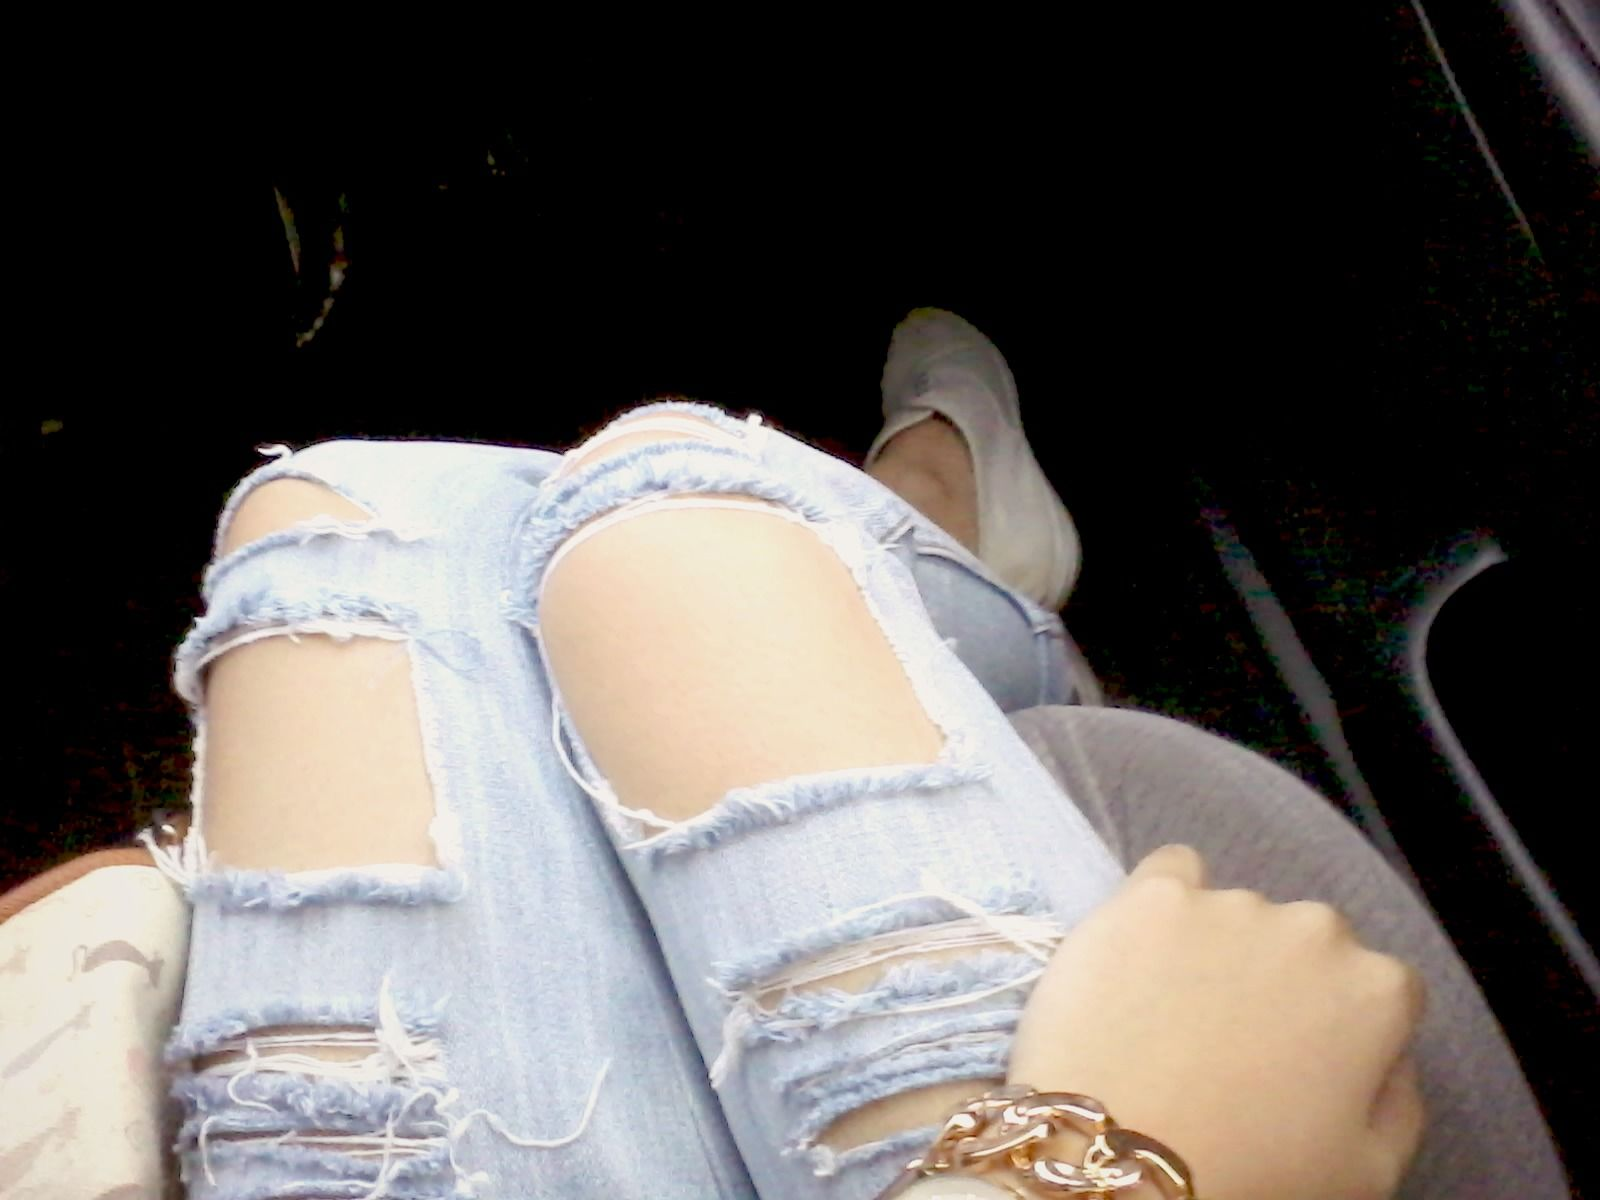 Made my own ripped jeans and they actually turned out nice! #deets #worthit #longprocess HAHA!